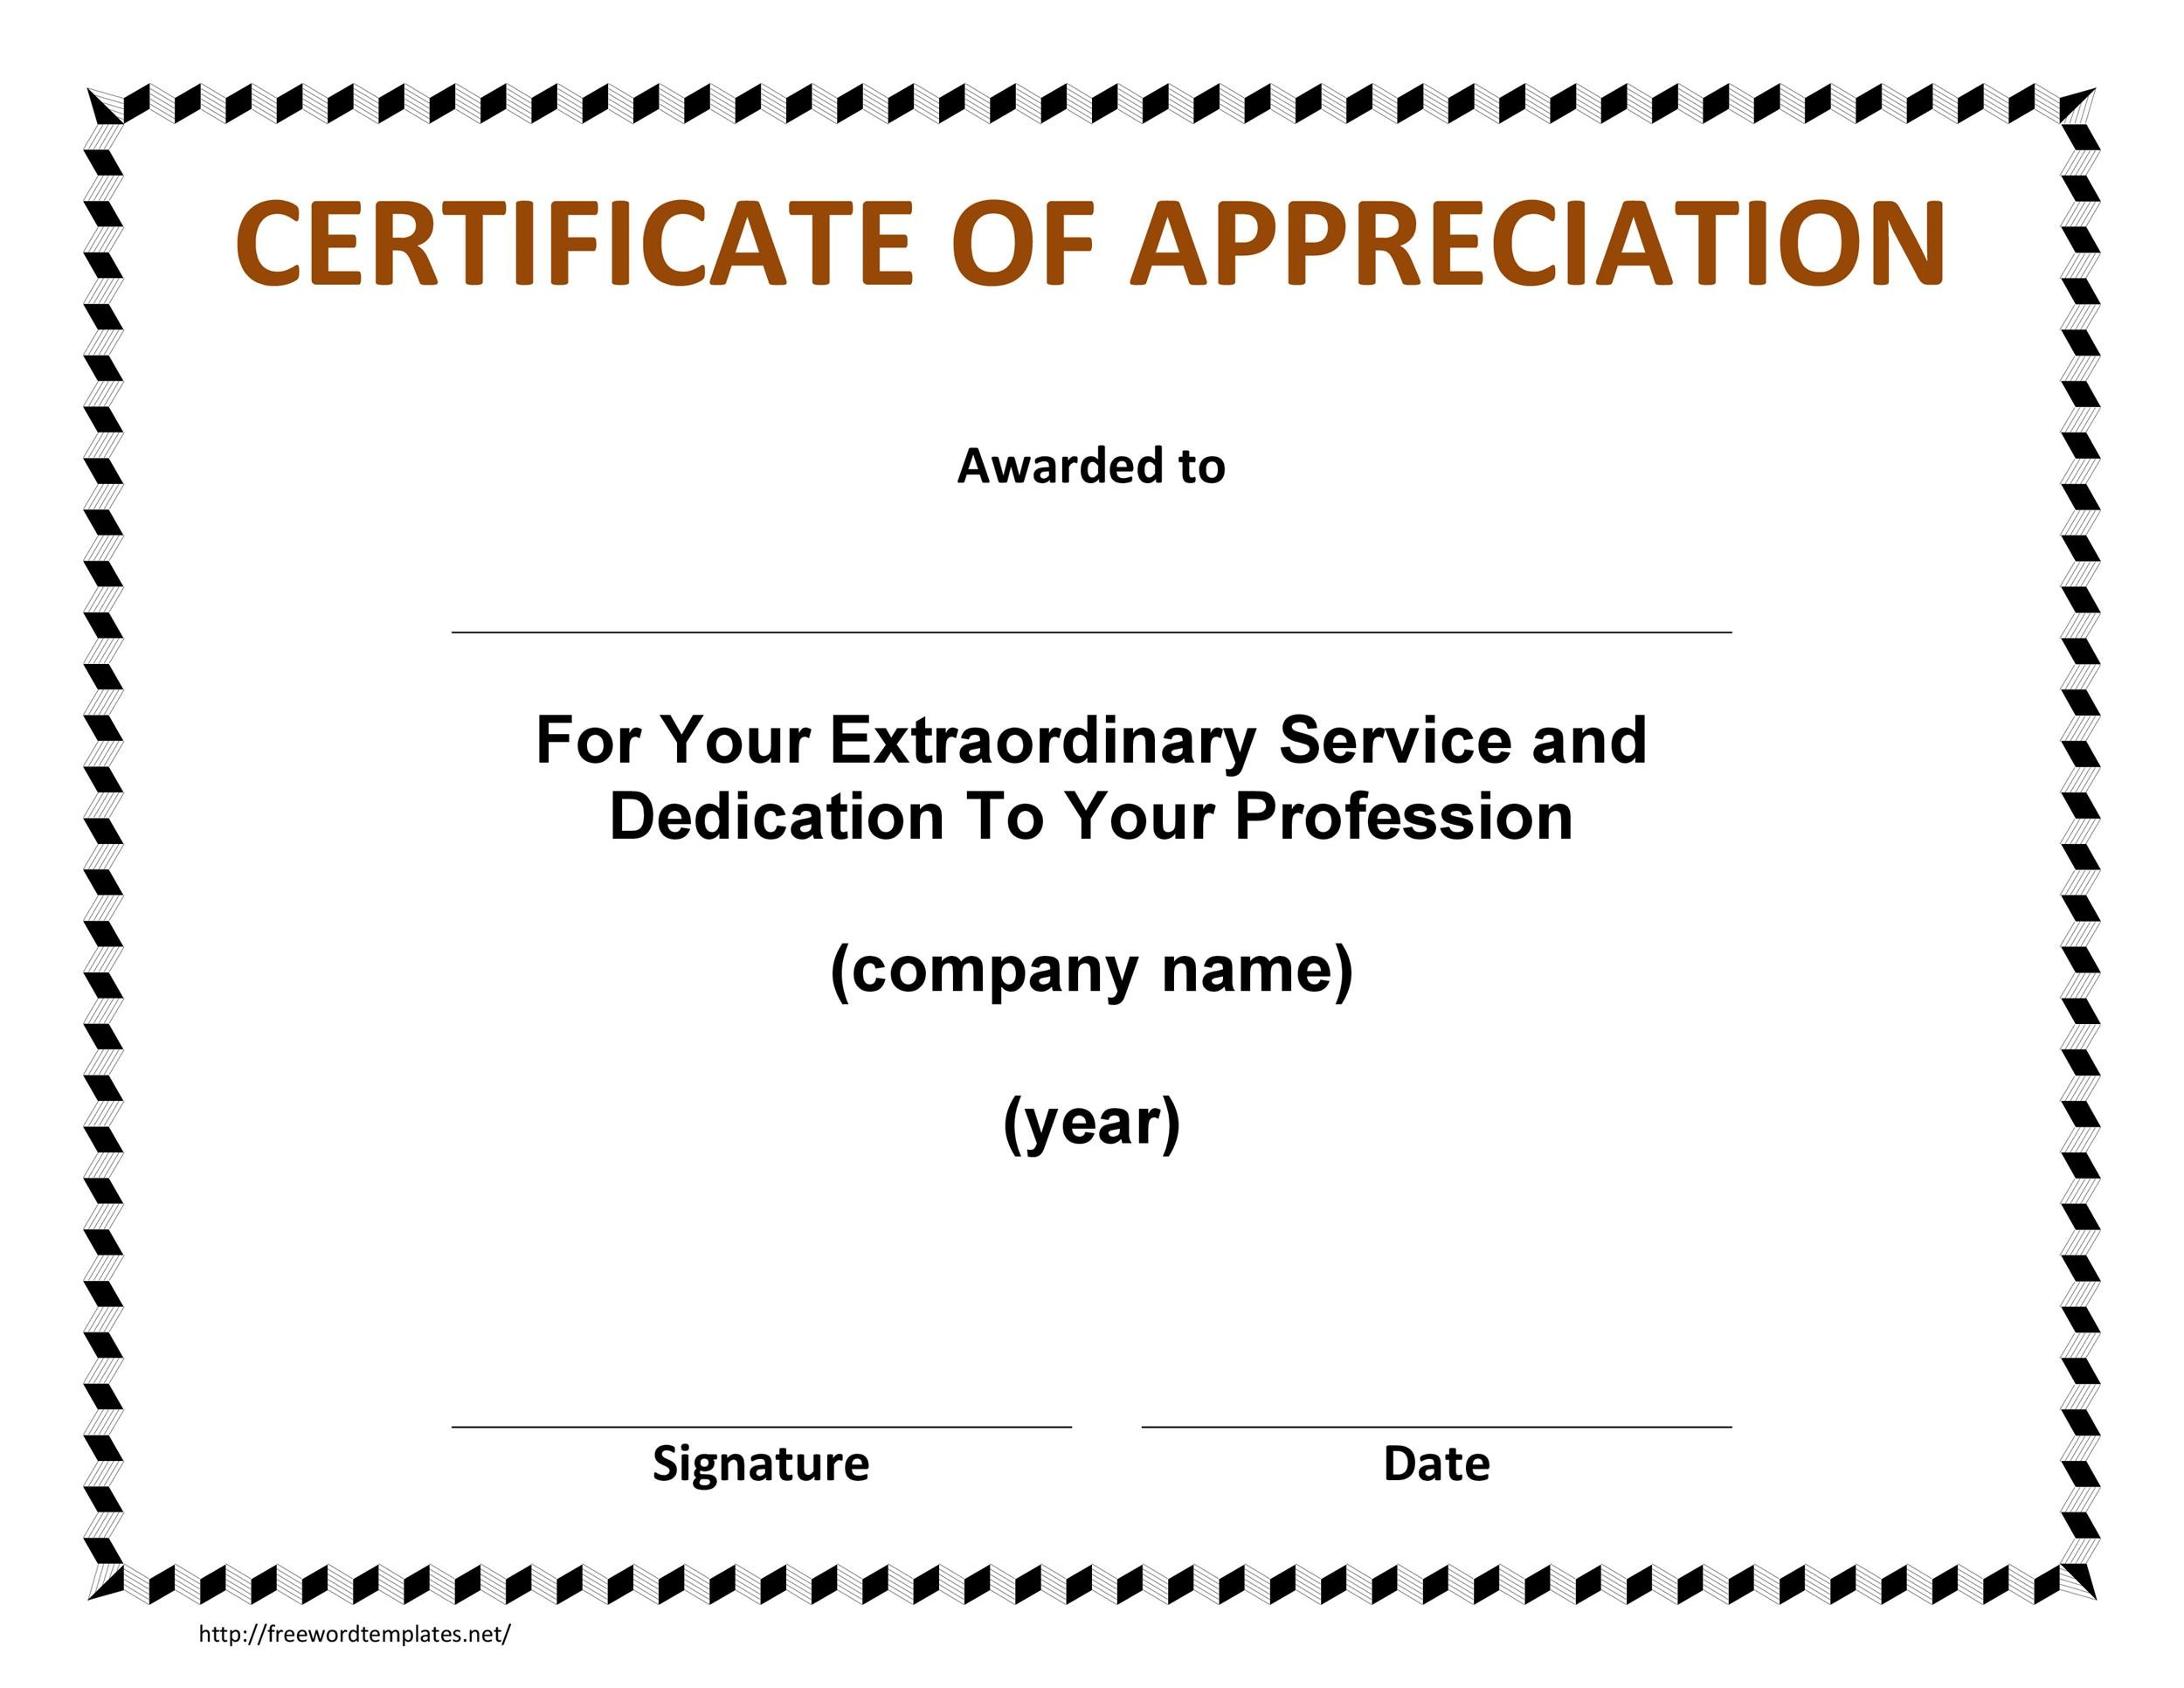 Incroyable Printable Certificate Of Appreciation 04